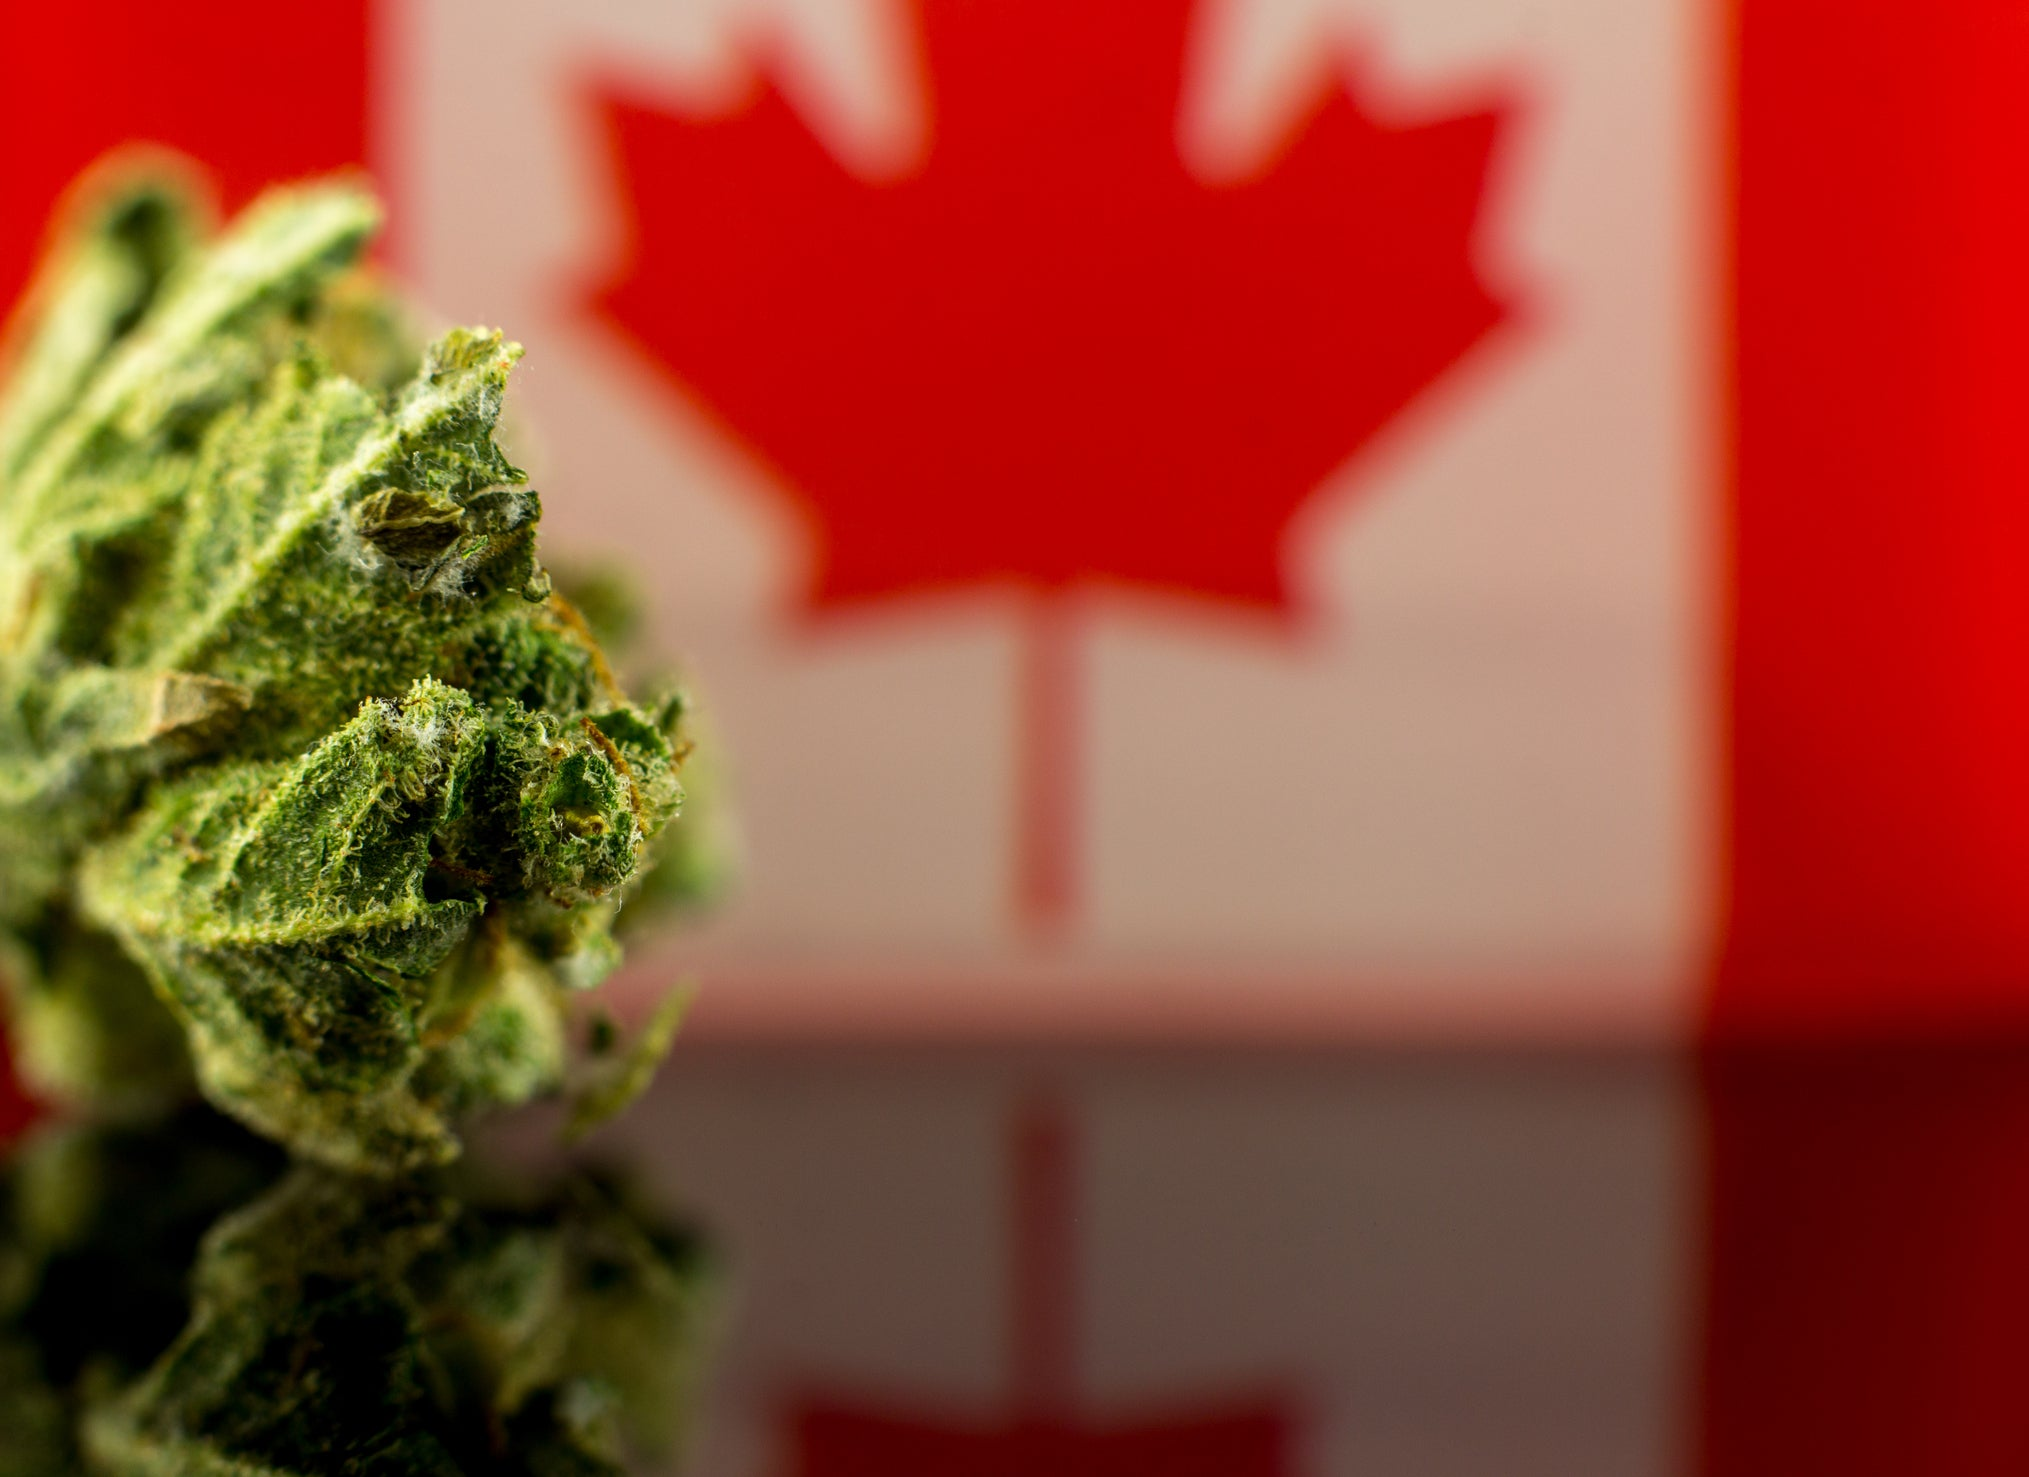 Canada Marijuana Industry Output Rises by 11% in May, Hits Year-to-Date High